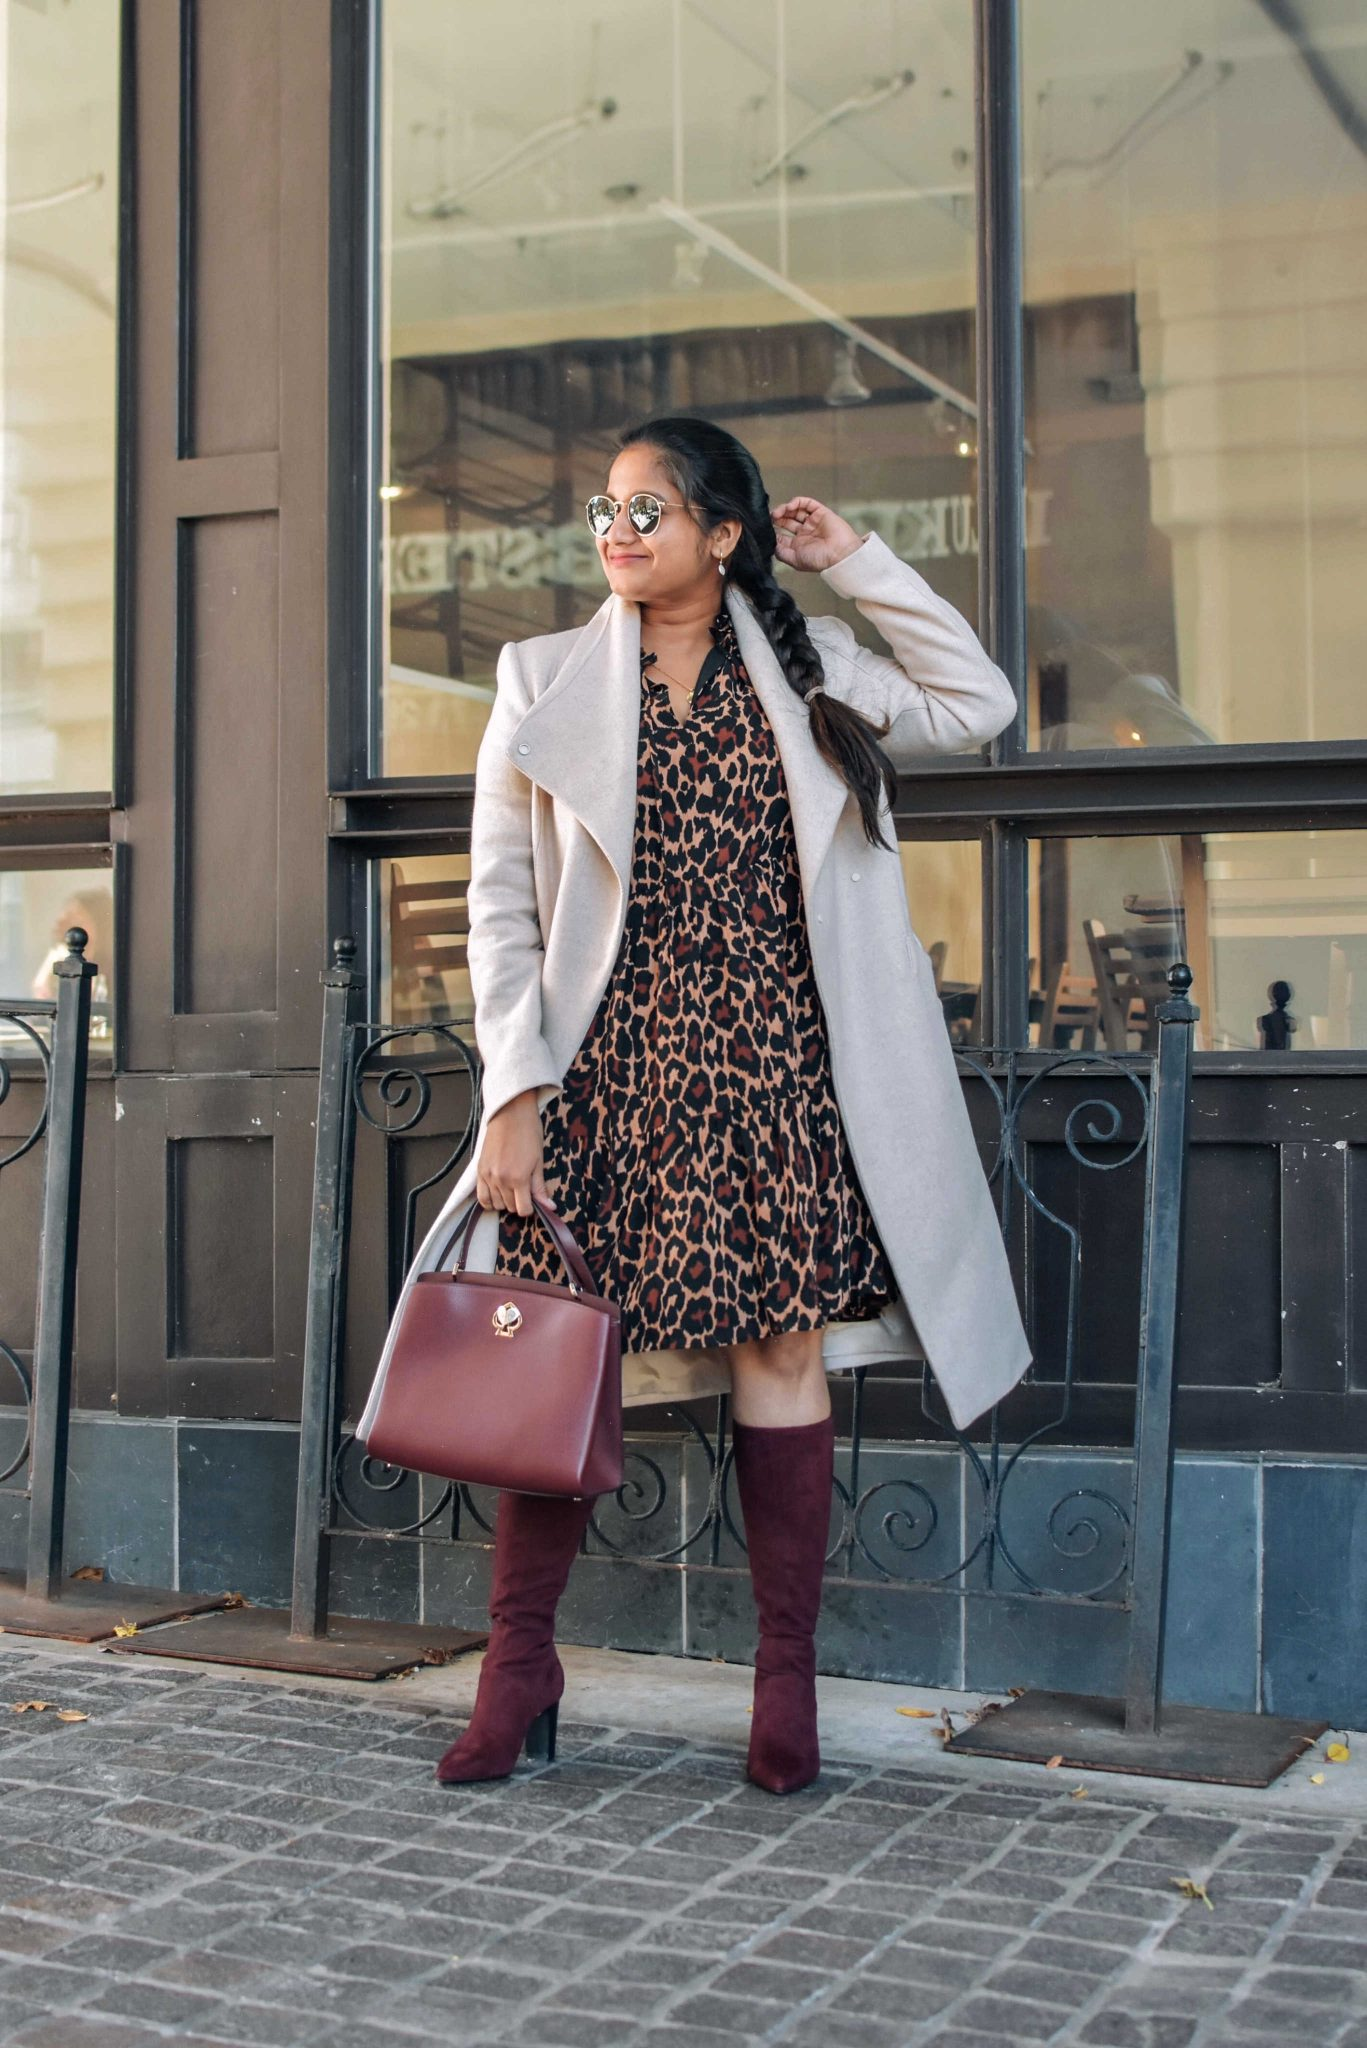 Wearing J.crew Tie-neck tiered dress in leopard crinkle chiffon, mango Belted wool coat, Boden Round Toe Stretch Burgundy boots | Cute Holiday Outfit Ideas by popular Maryland modest fashion blog, Dreaming Loud: image of a woman wearing a J.crew Tie-neck tiered dress in leopard crinkle chiffon, mango Belted wool coat, and Boden Round Toe Stretch Burgundy boots.